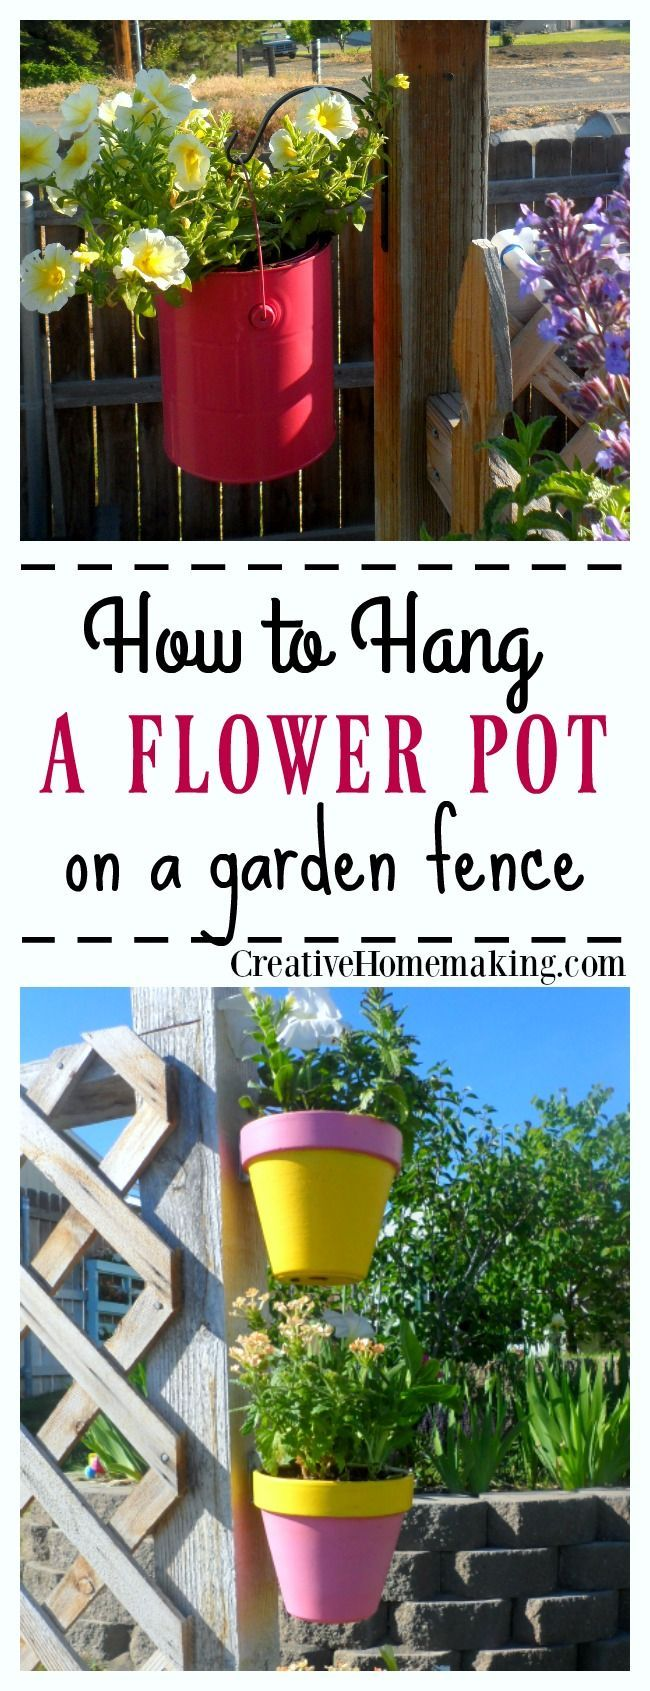 3 DIY Hanging Fence Planters 244 best